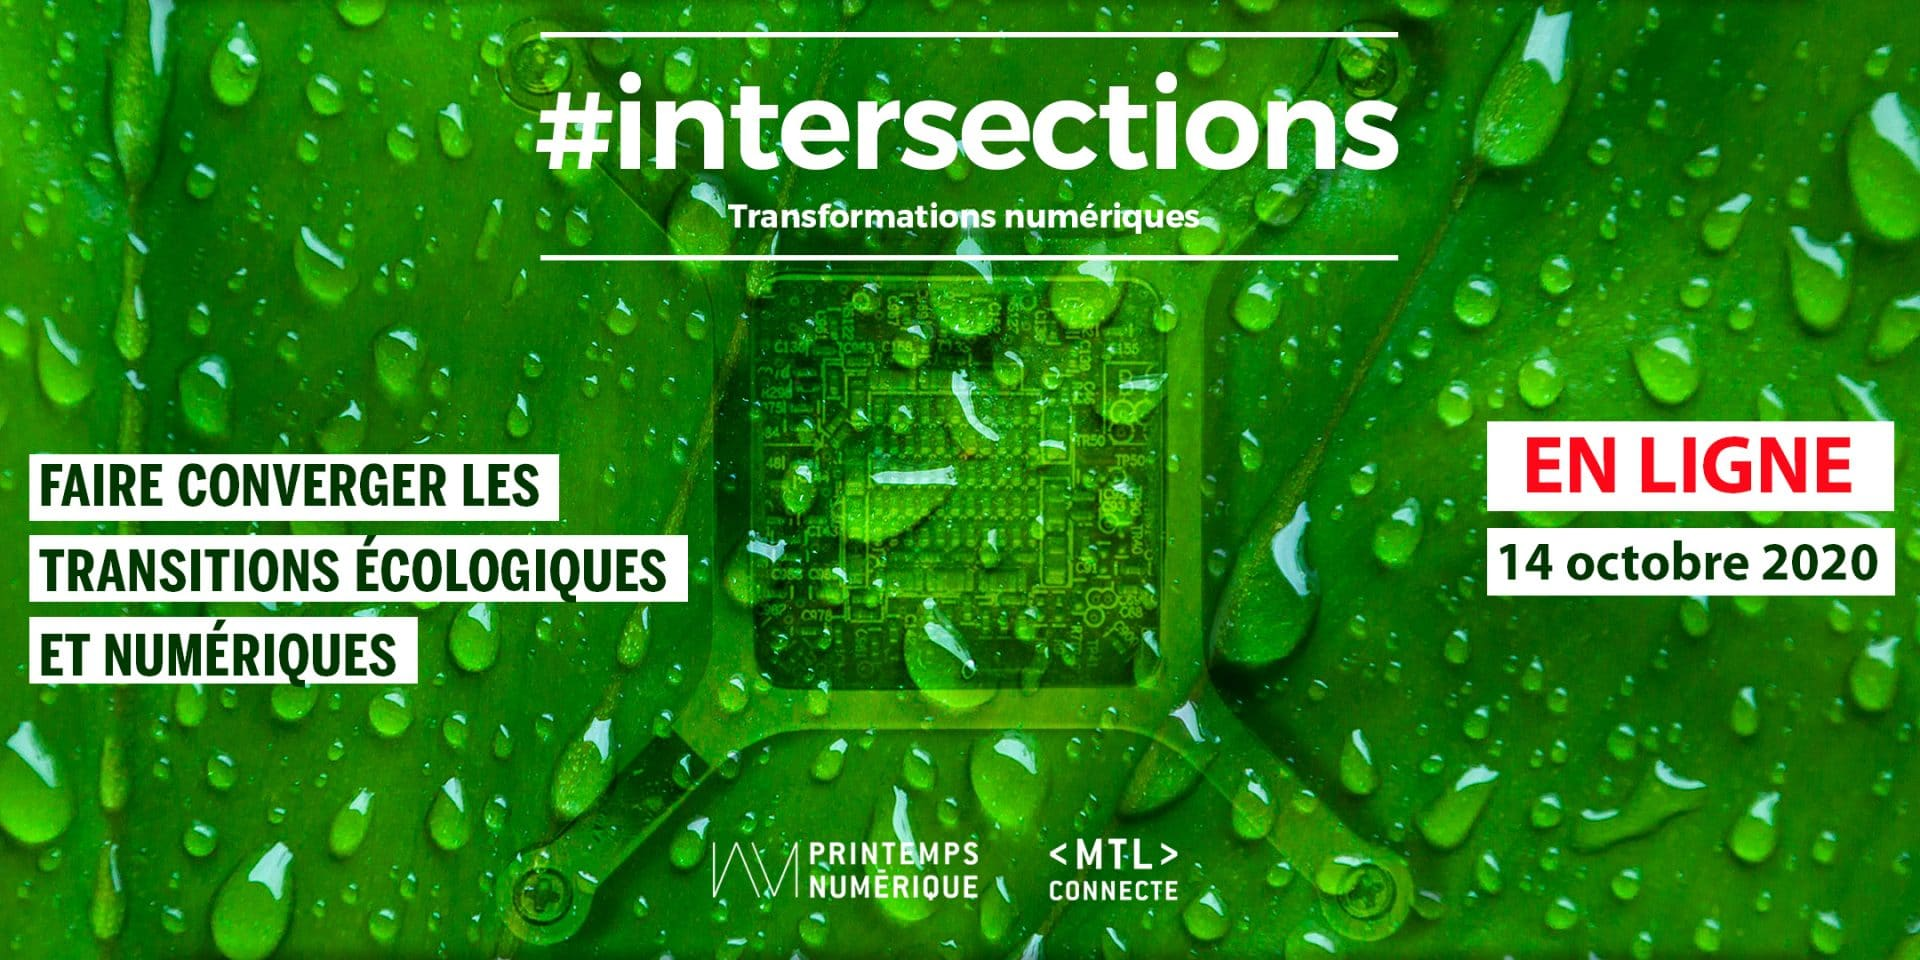 #intersections VOL.12: Sustainable development: bringing togetherecological and digital transitions